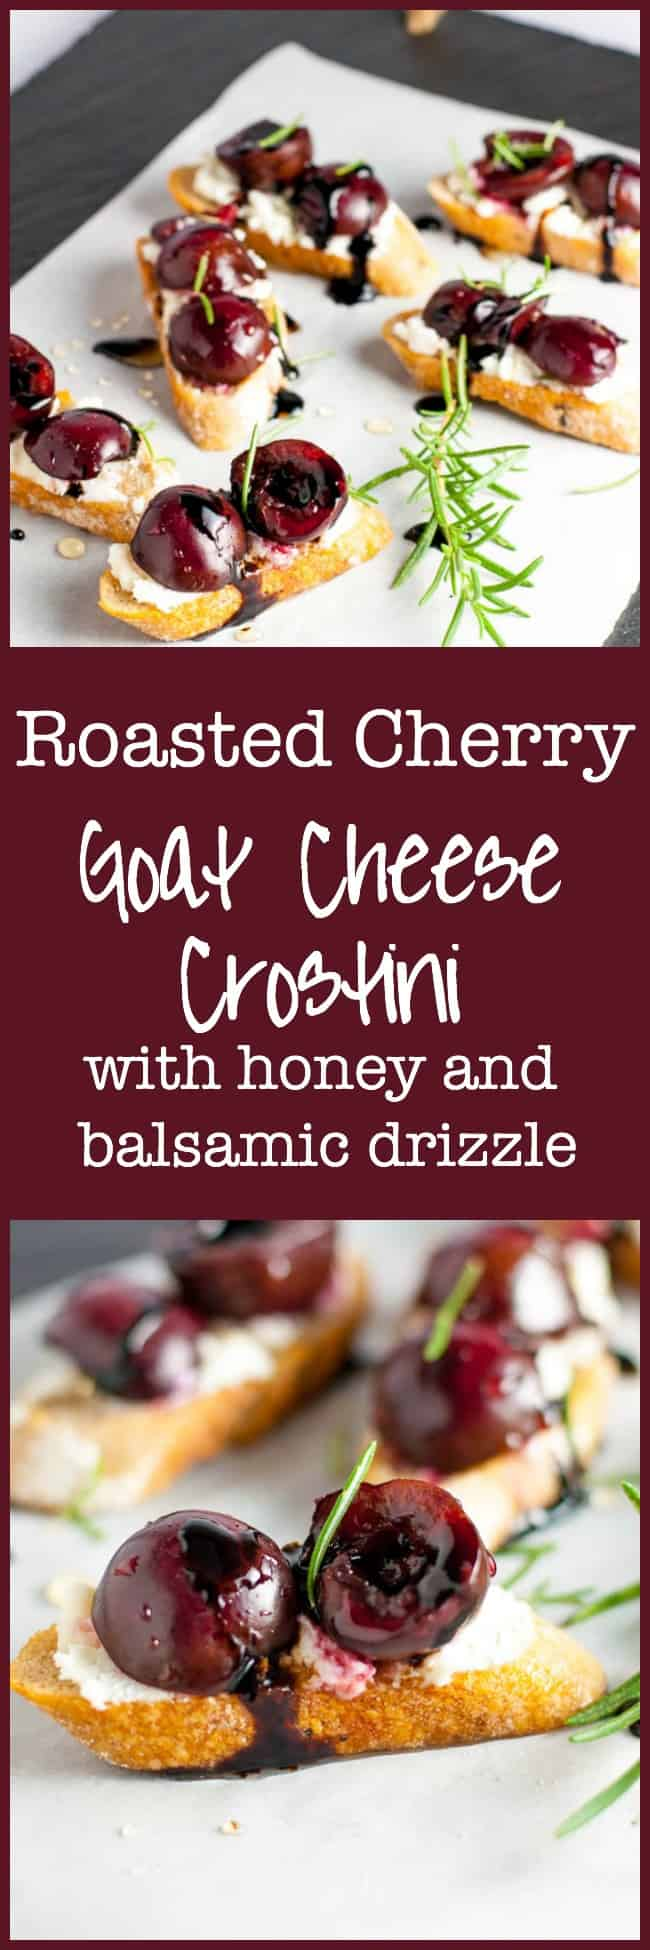 Easy and delicious Roasted Cherry Goat Cheese Crostini with honey and balsamic drizzle. Incredible flavours! |www.flavourandavour.com